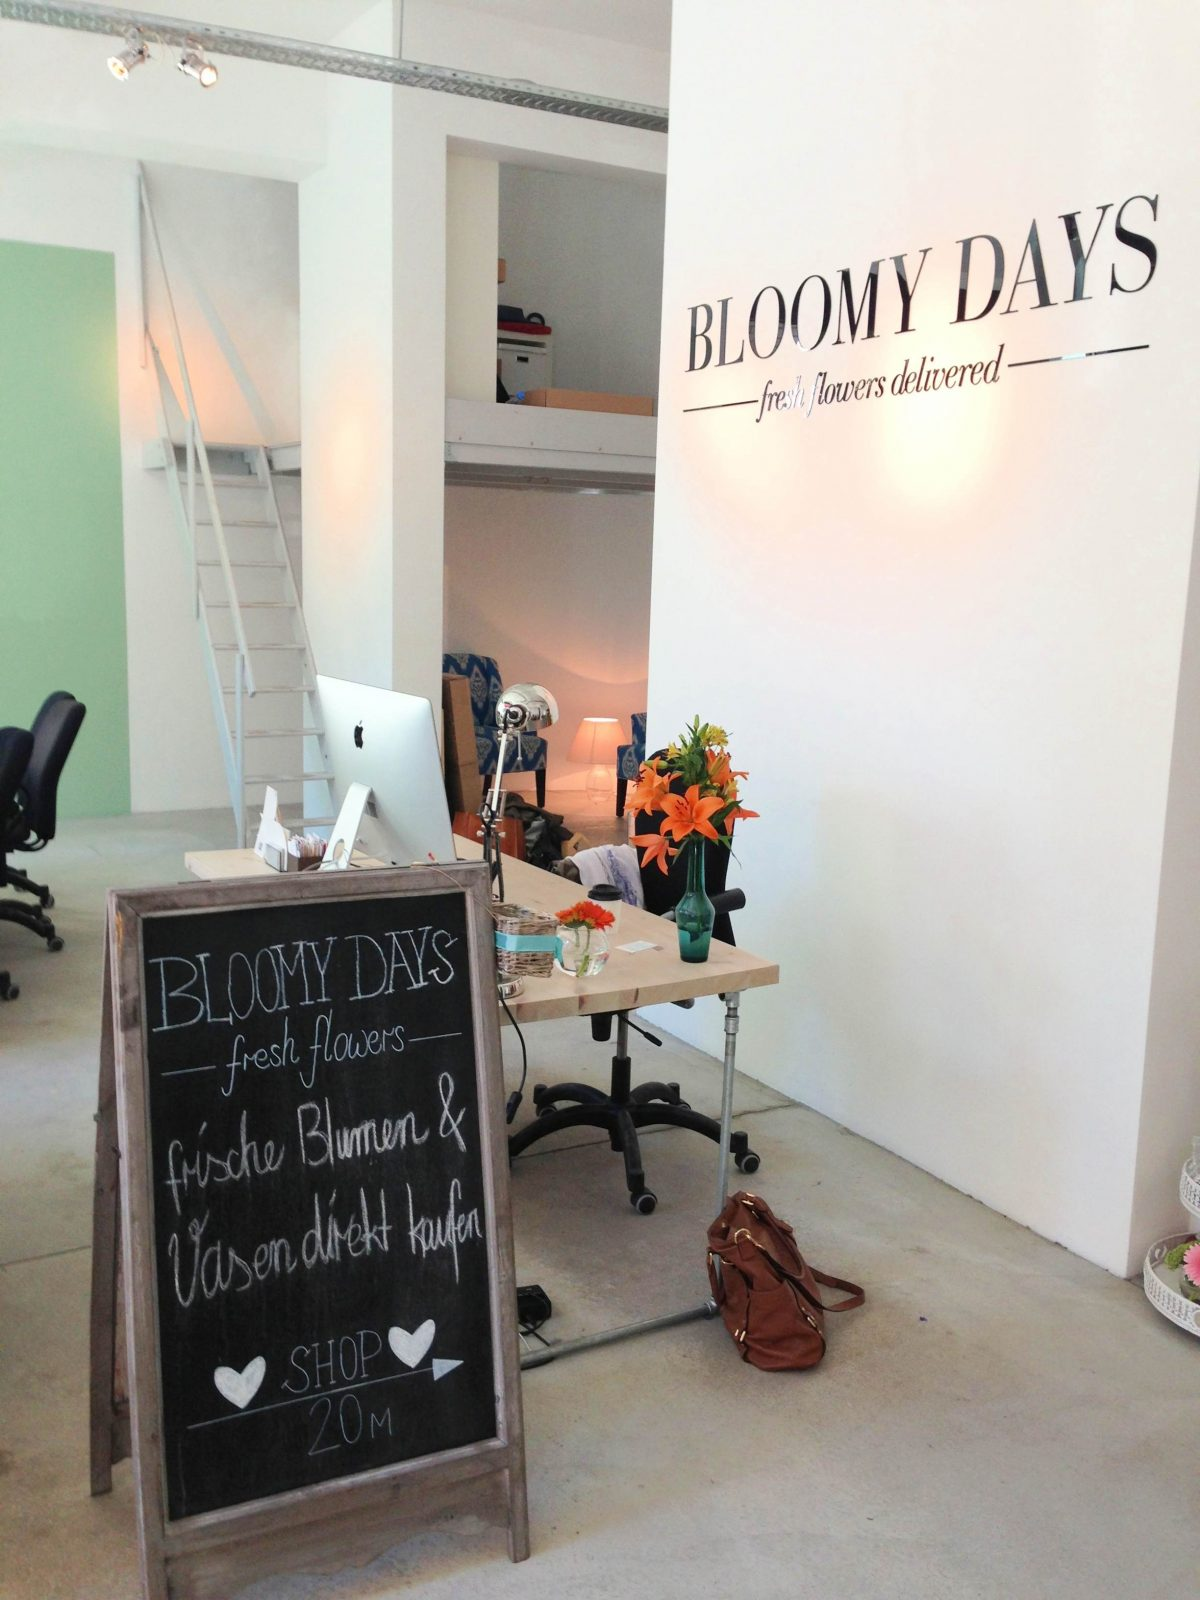 Bloomy Days Blumenbindeparty, Blumen